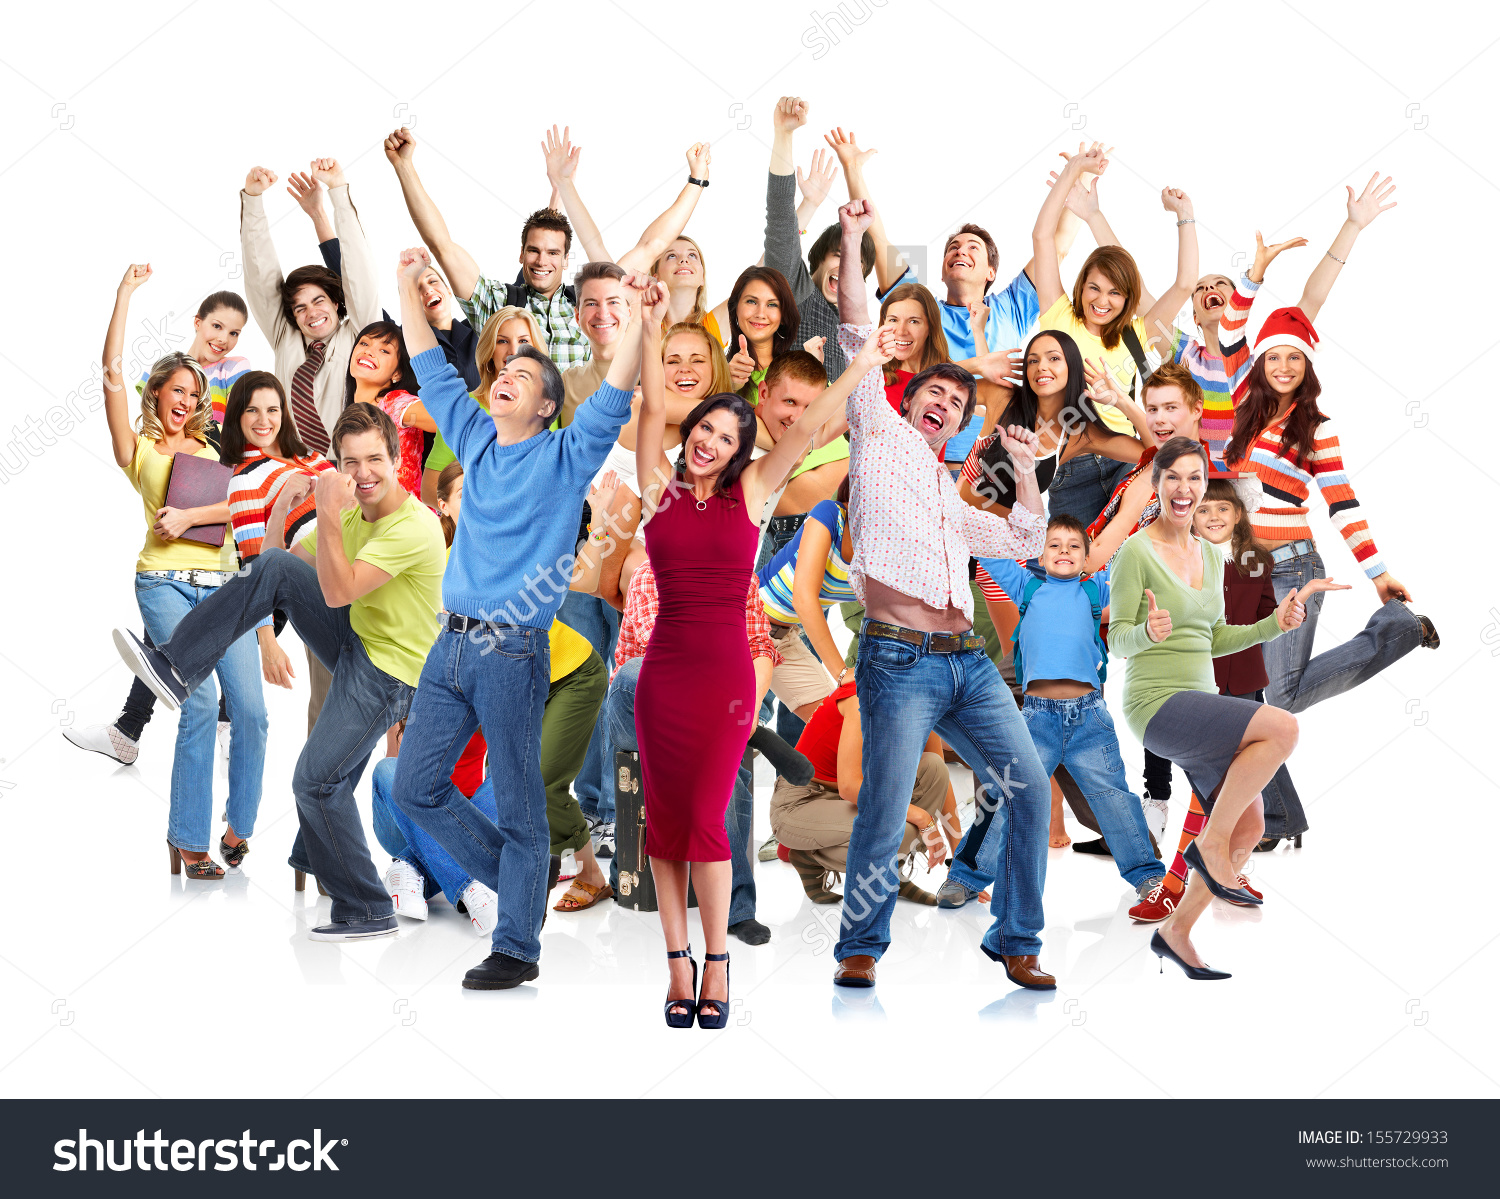 stock-photo-group-of-happy-people-jumping-isolated-on-white-background-155729933